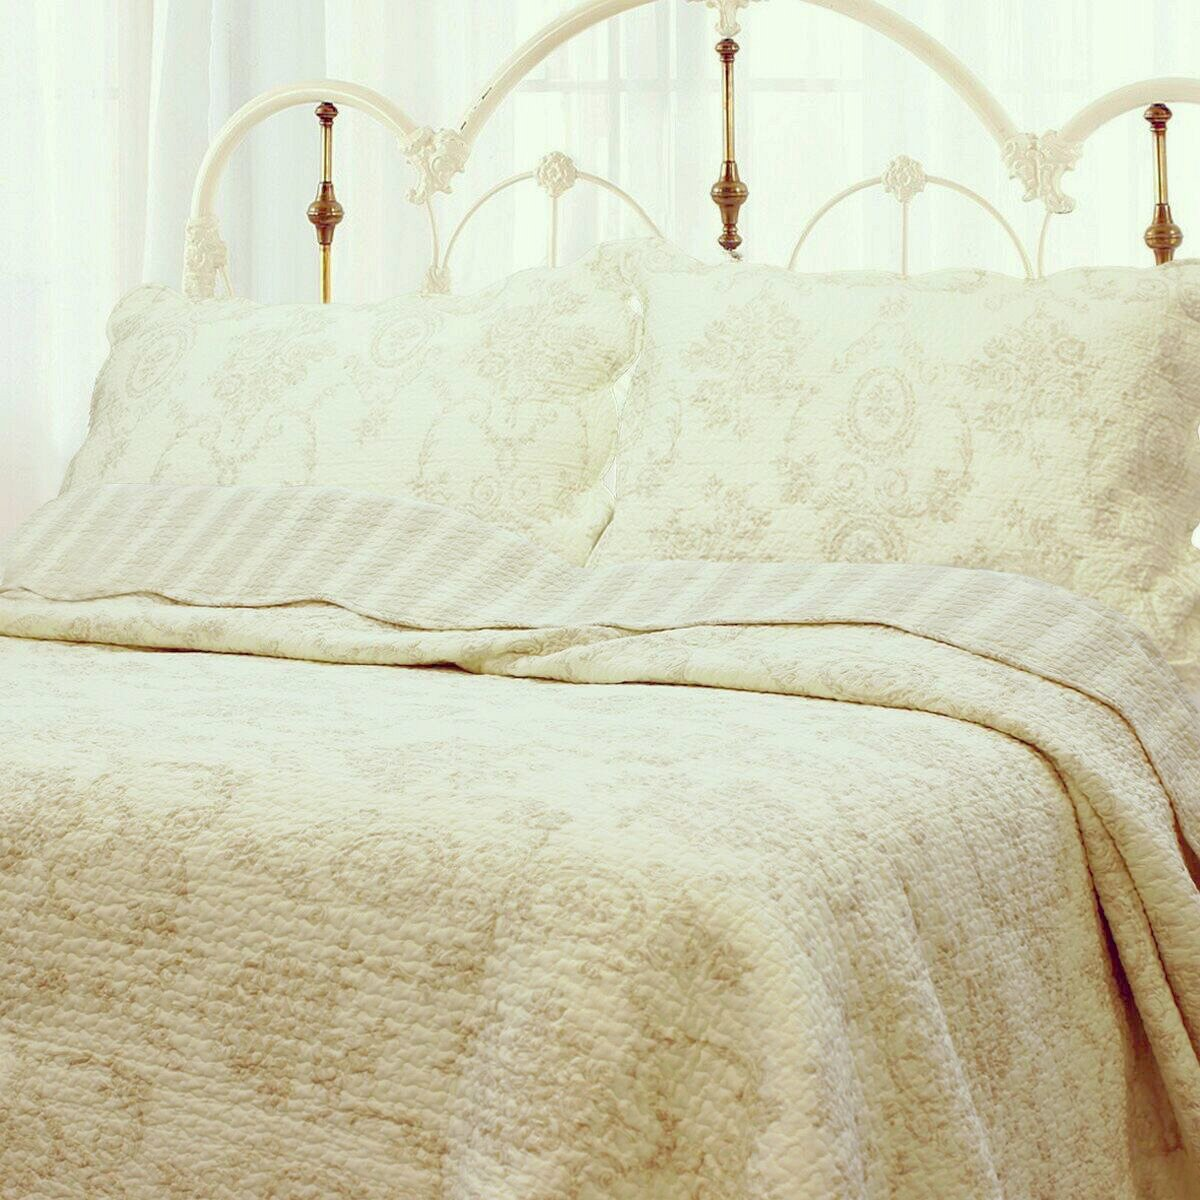 Cozy Line Home Fashions French Medallion 100% COTTON Bedding Quilt Set, Beige Ivory Rose Flower Reversible Coverlet Bedspread for Bedroom / Guestroom, Gifts for Women Men(Cream Eggnog, Queen -3 piece)